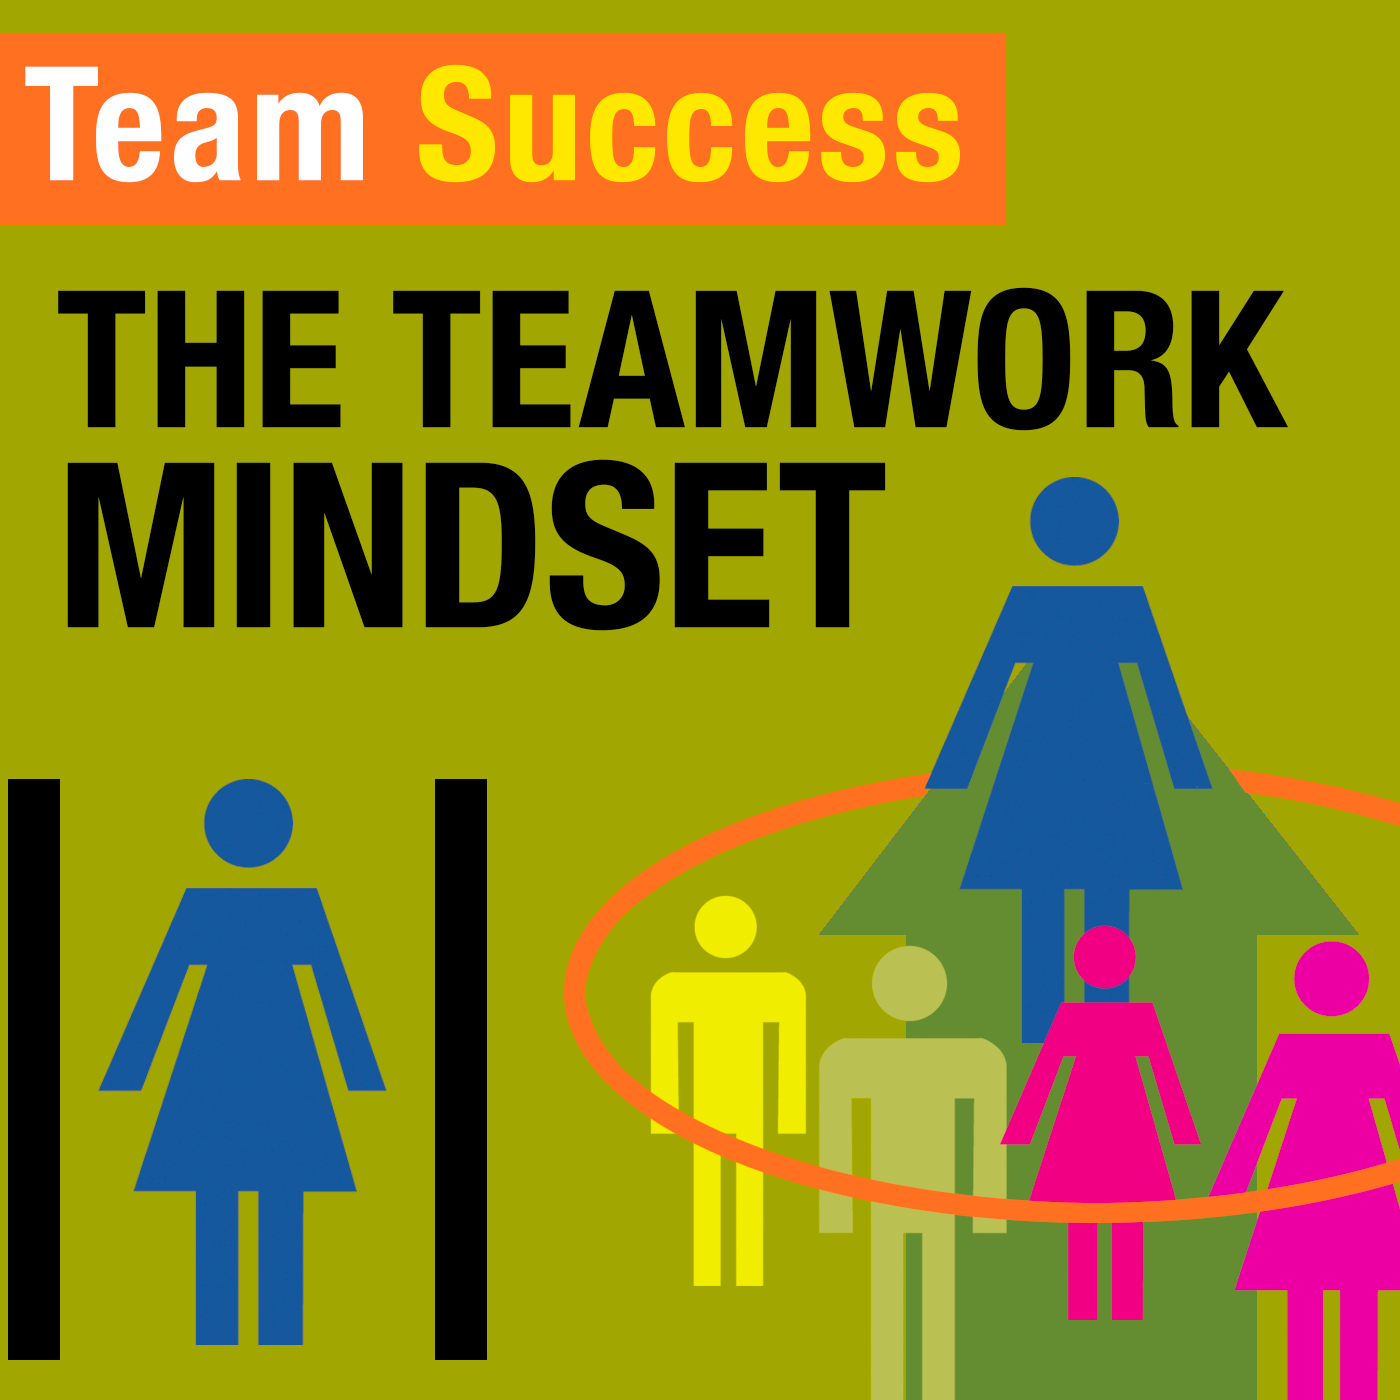 Teamwork Mindset - Team Success Podcast